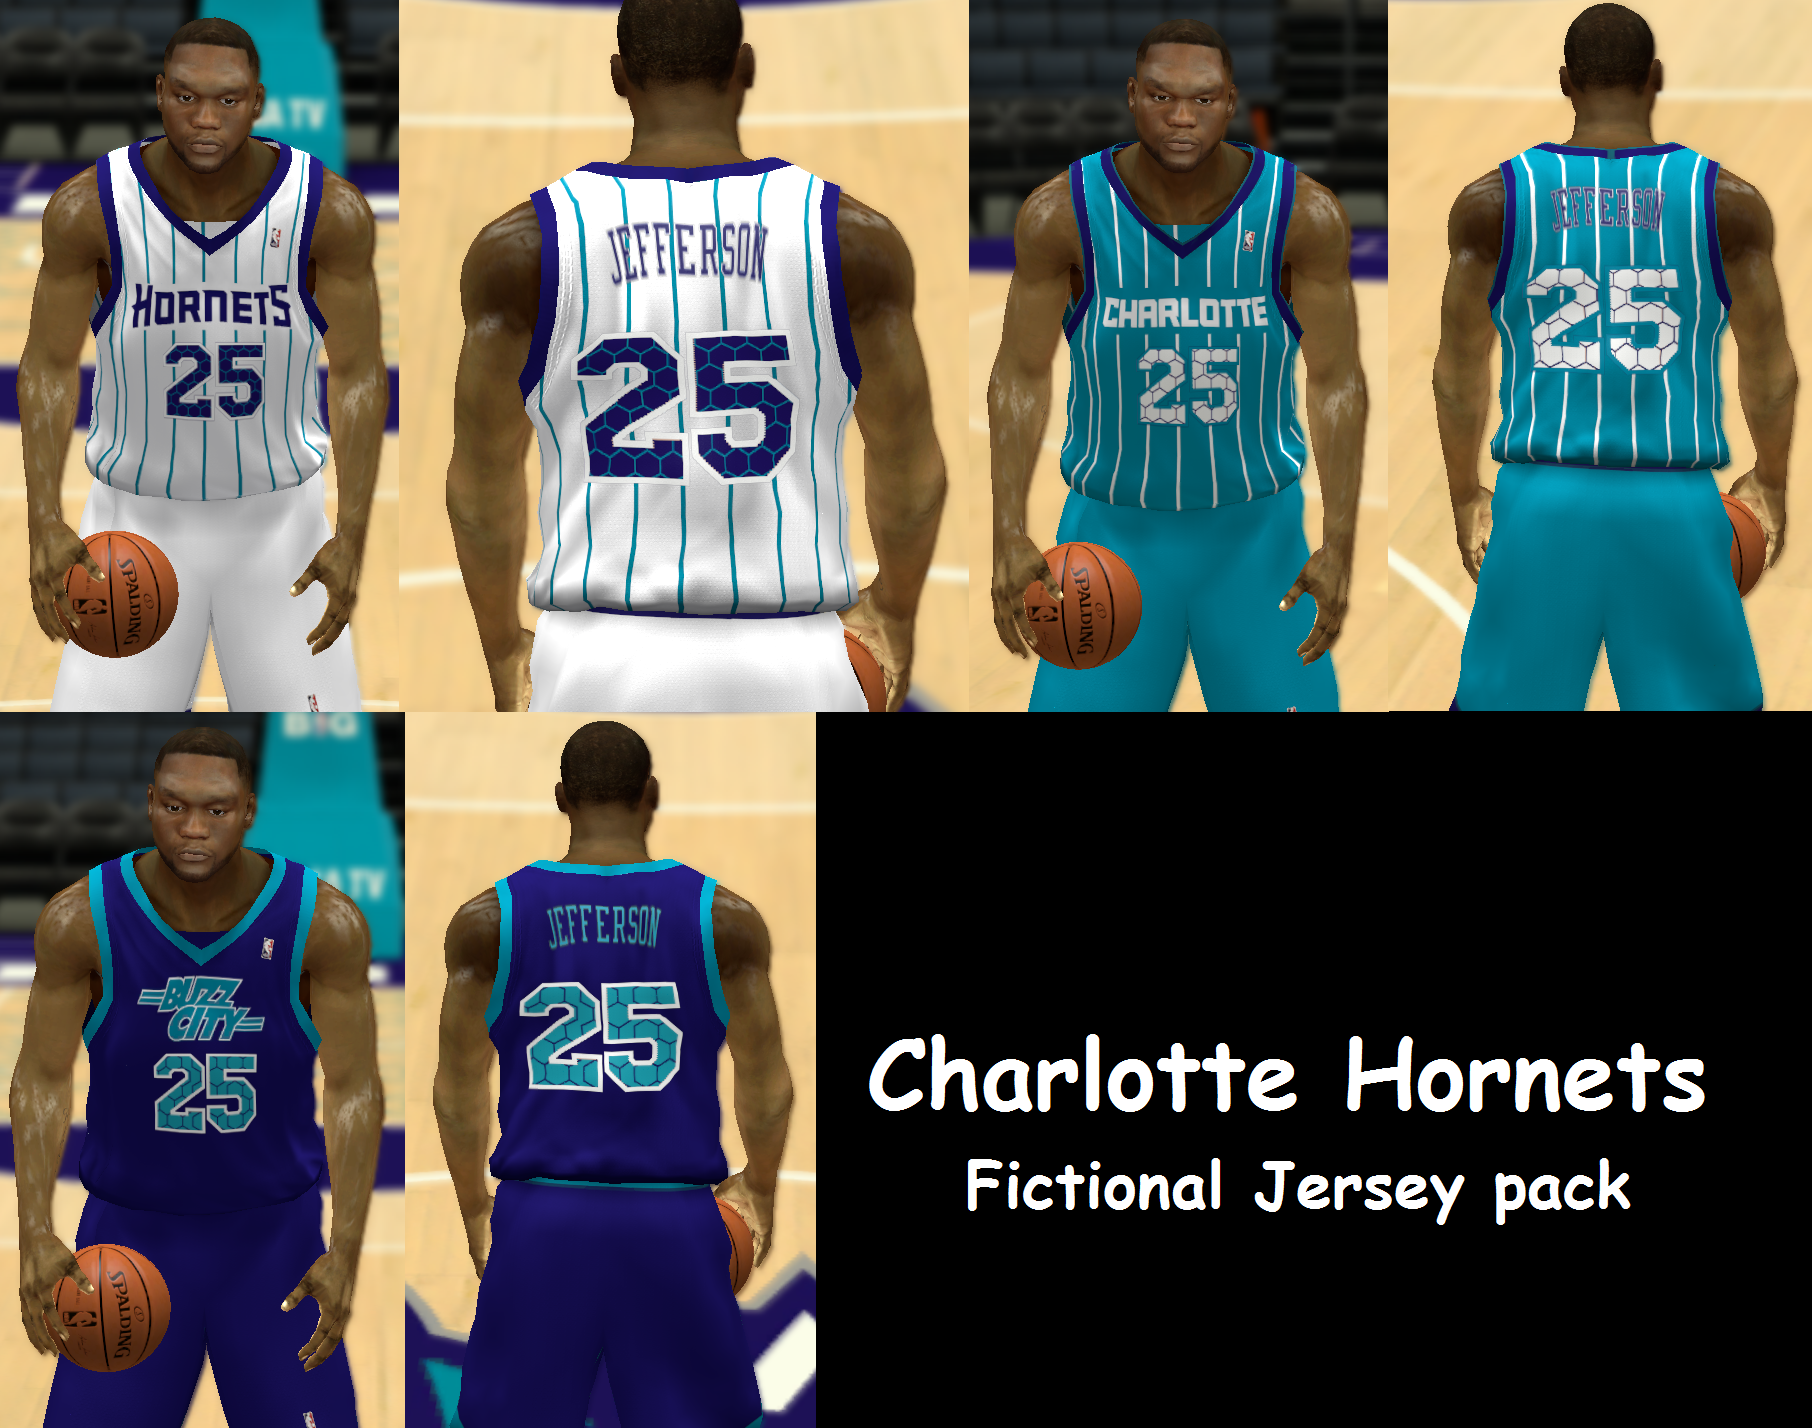 Charlotte Hornets Fictional Jersey Pack